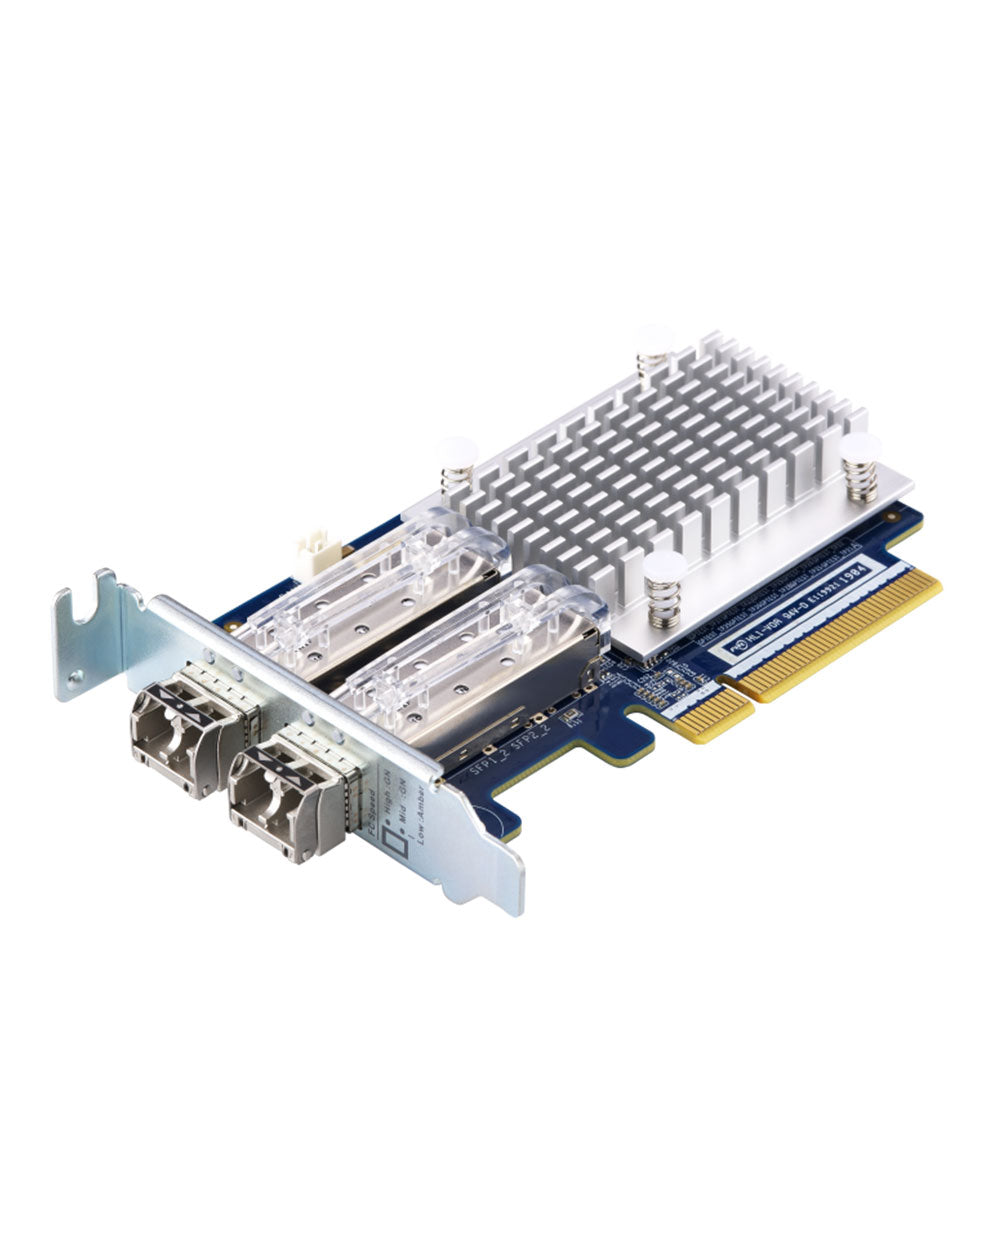 QXP-16G2FC 16G Fibre Channel Host Bus Adapter